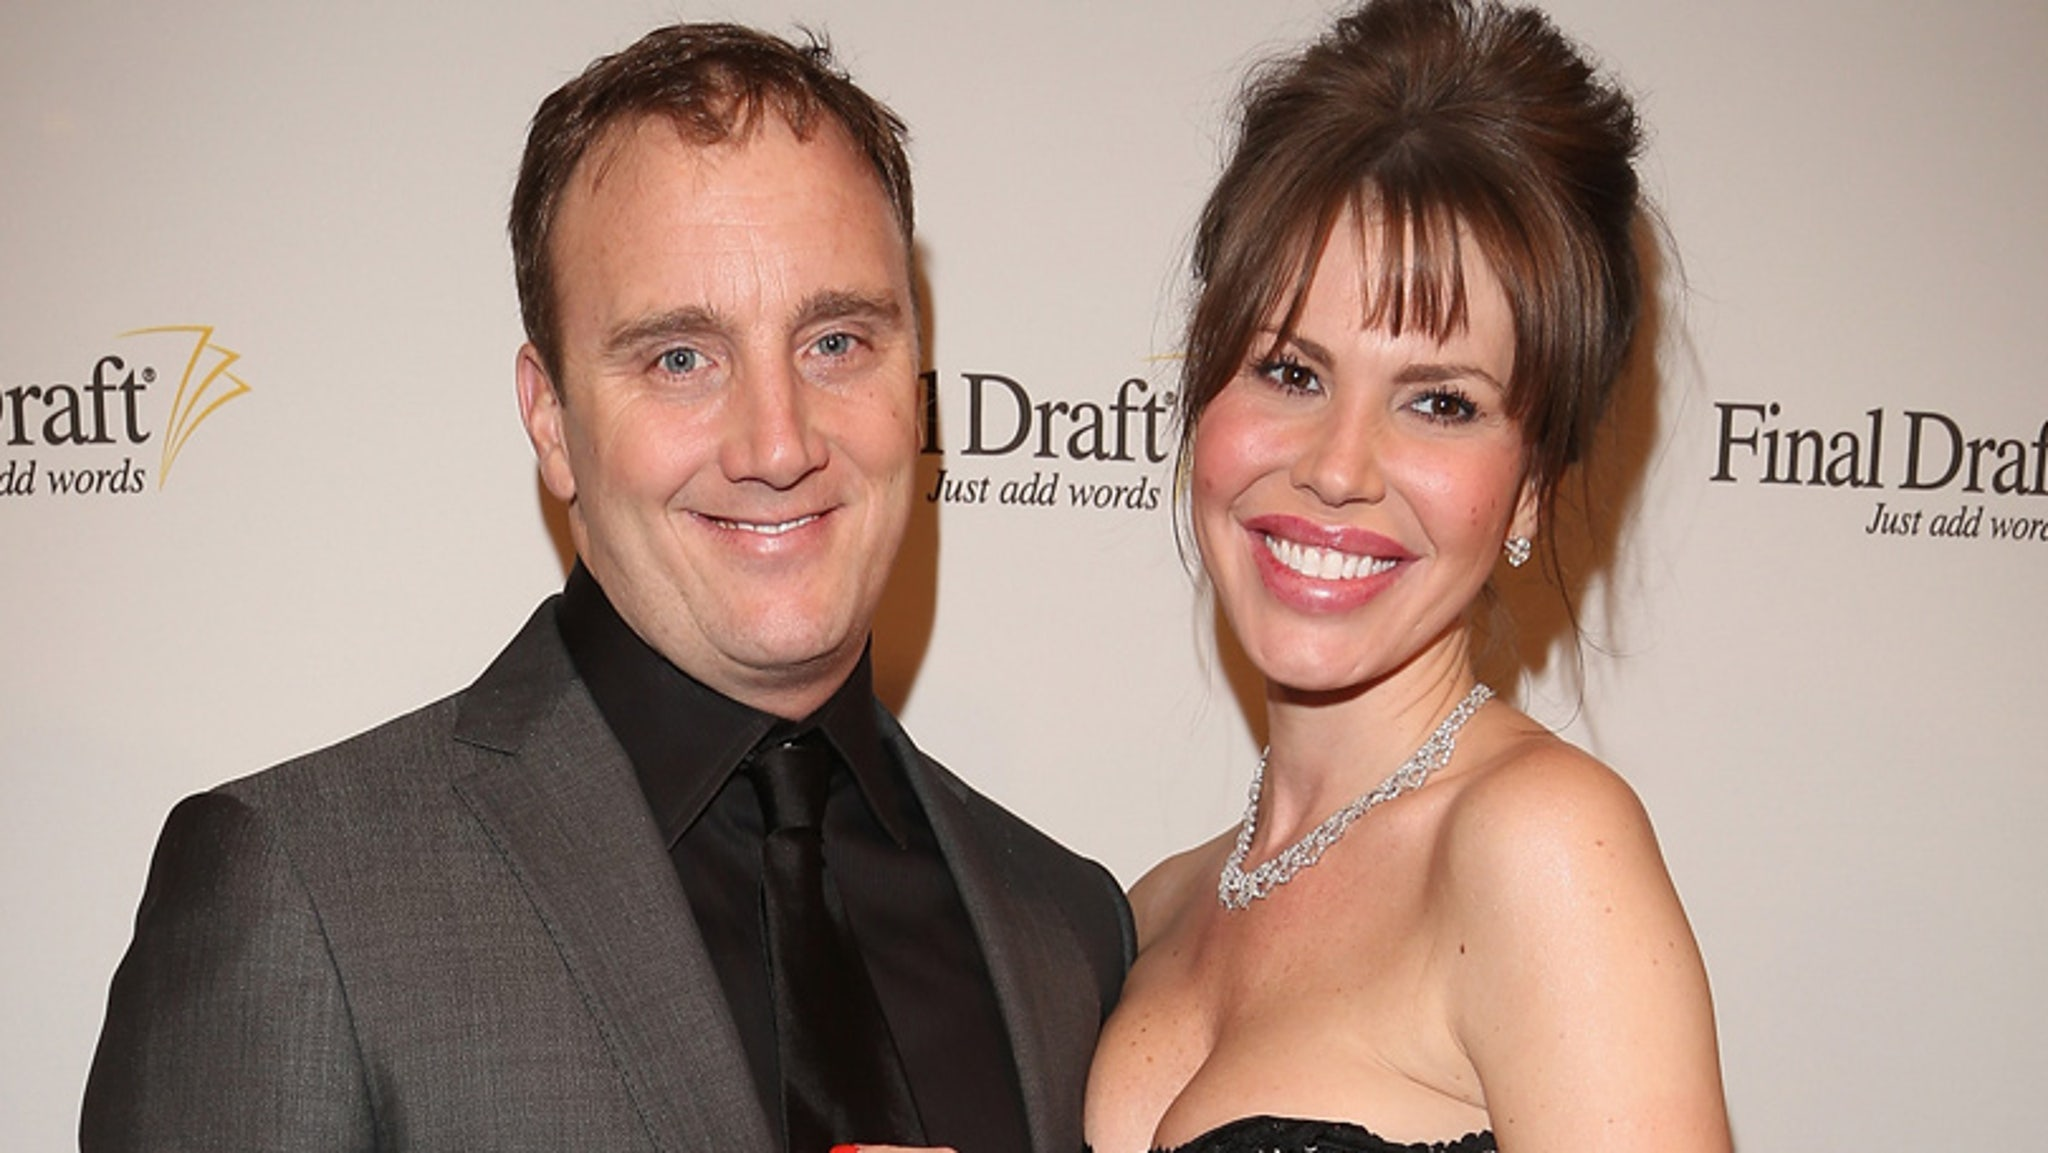 Jay Mohr Shares Rare Video Of Nikki Cox After Filing For Divorce